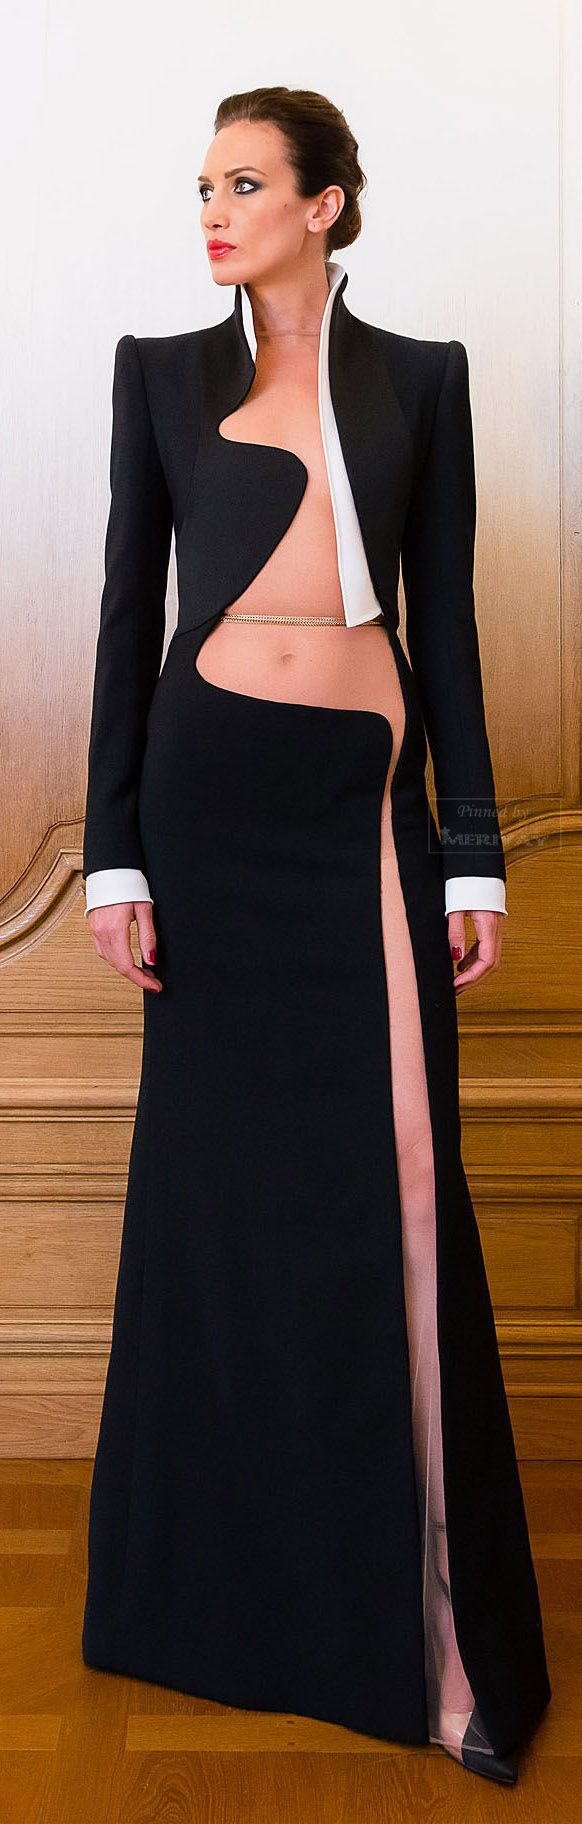 Stéphane Rolland Fall-winter 2014-2015. The lower cut-out looks a little odd where it doesn't quite meet the hip, but it's a fun idea. Especially since November doesn't have a navel scar to interrupt the lines.